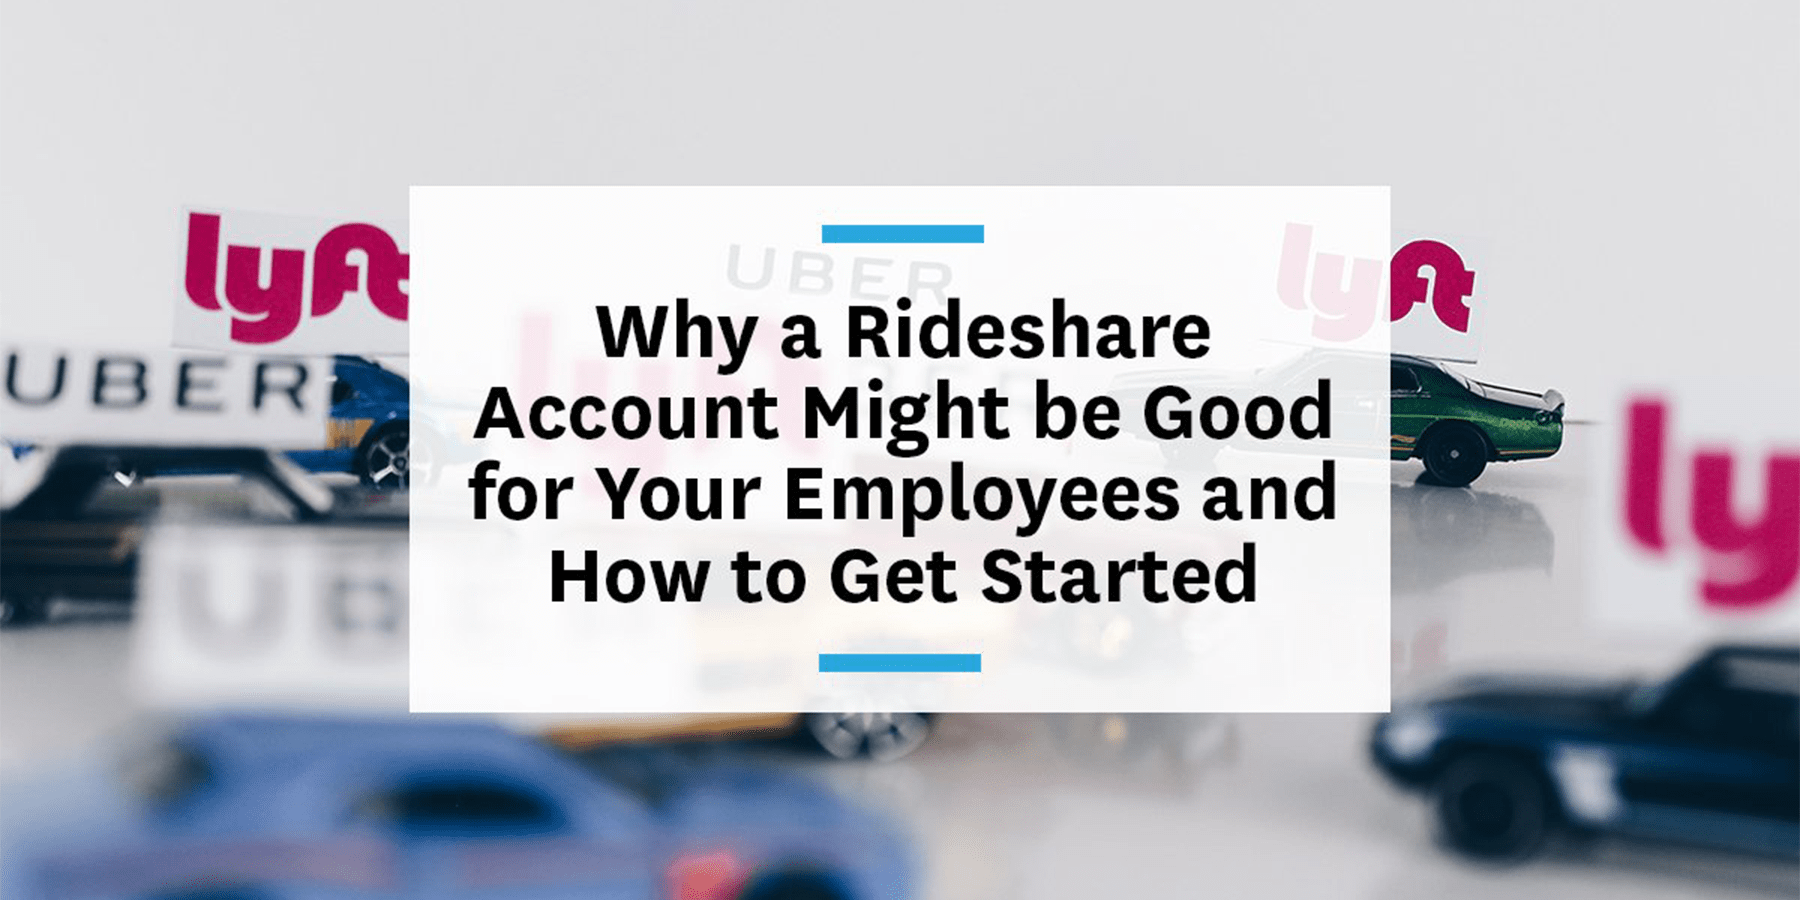 Feature image for setting up a corporate ridehailing account for your employees